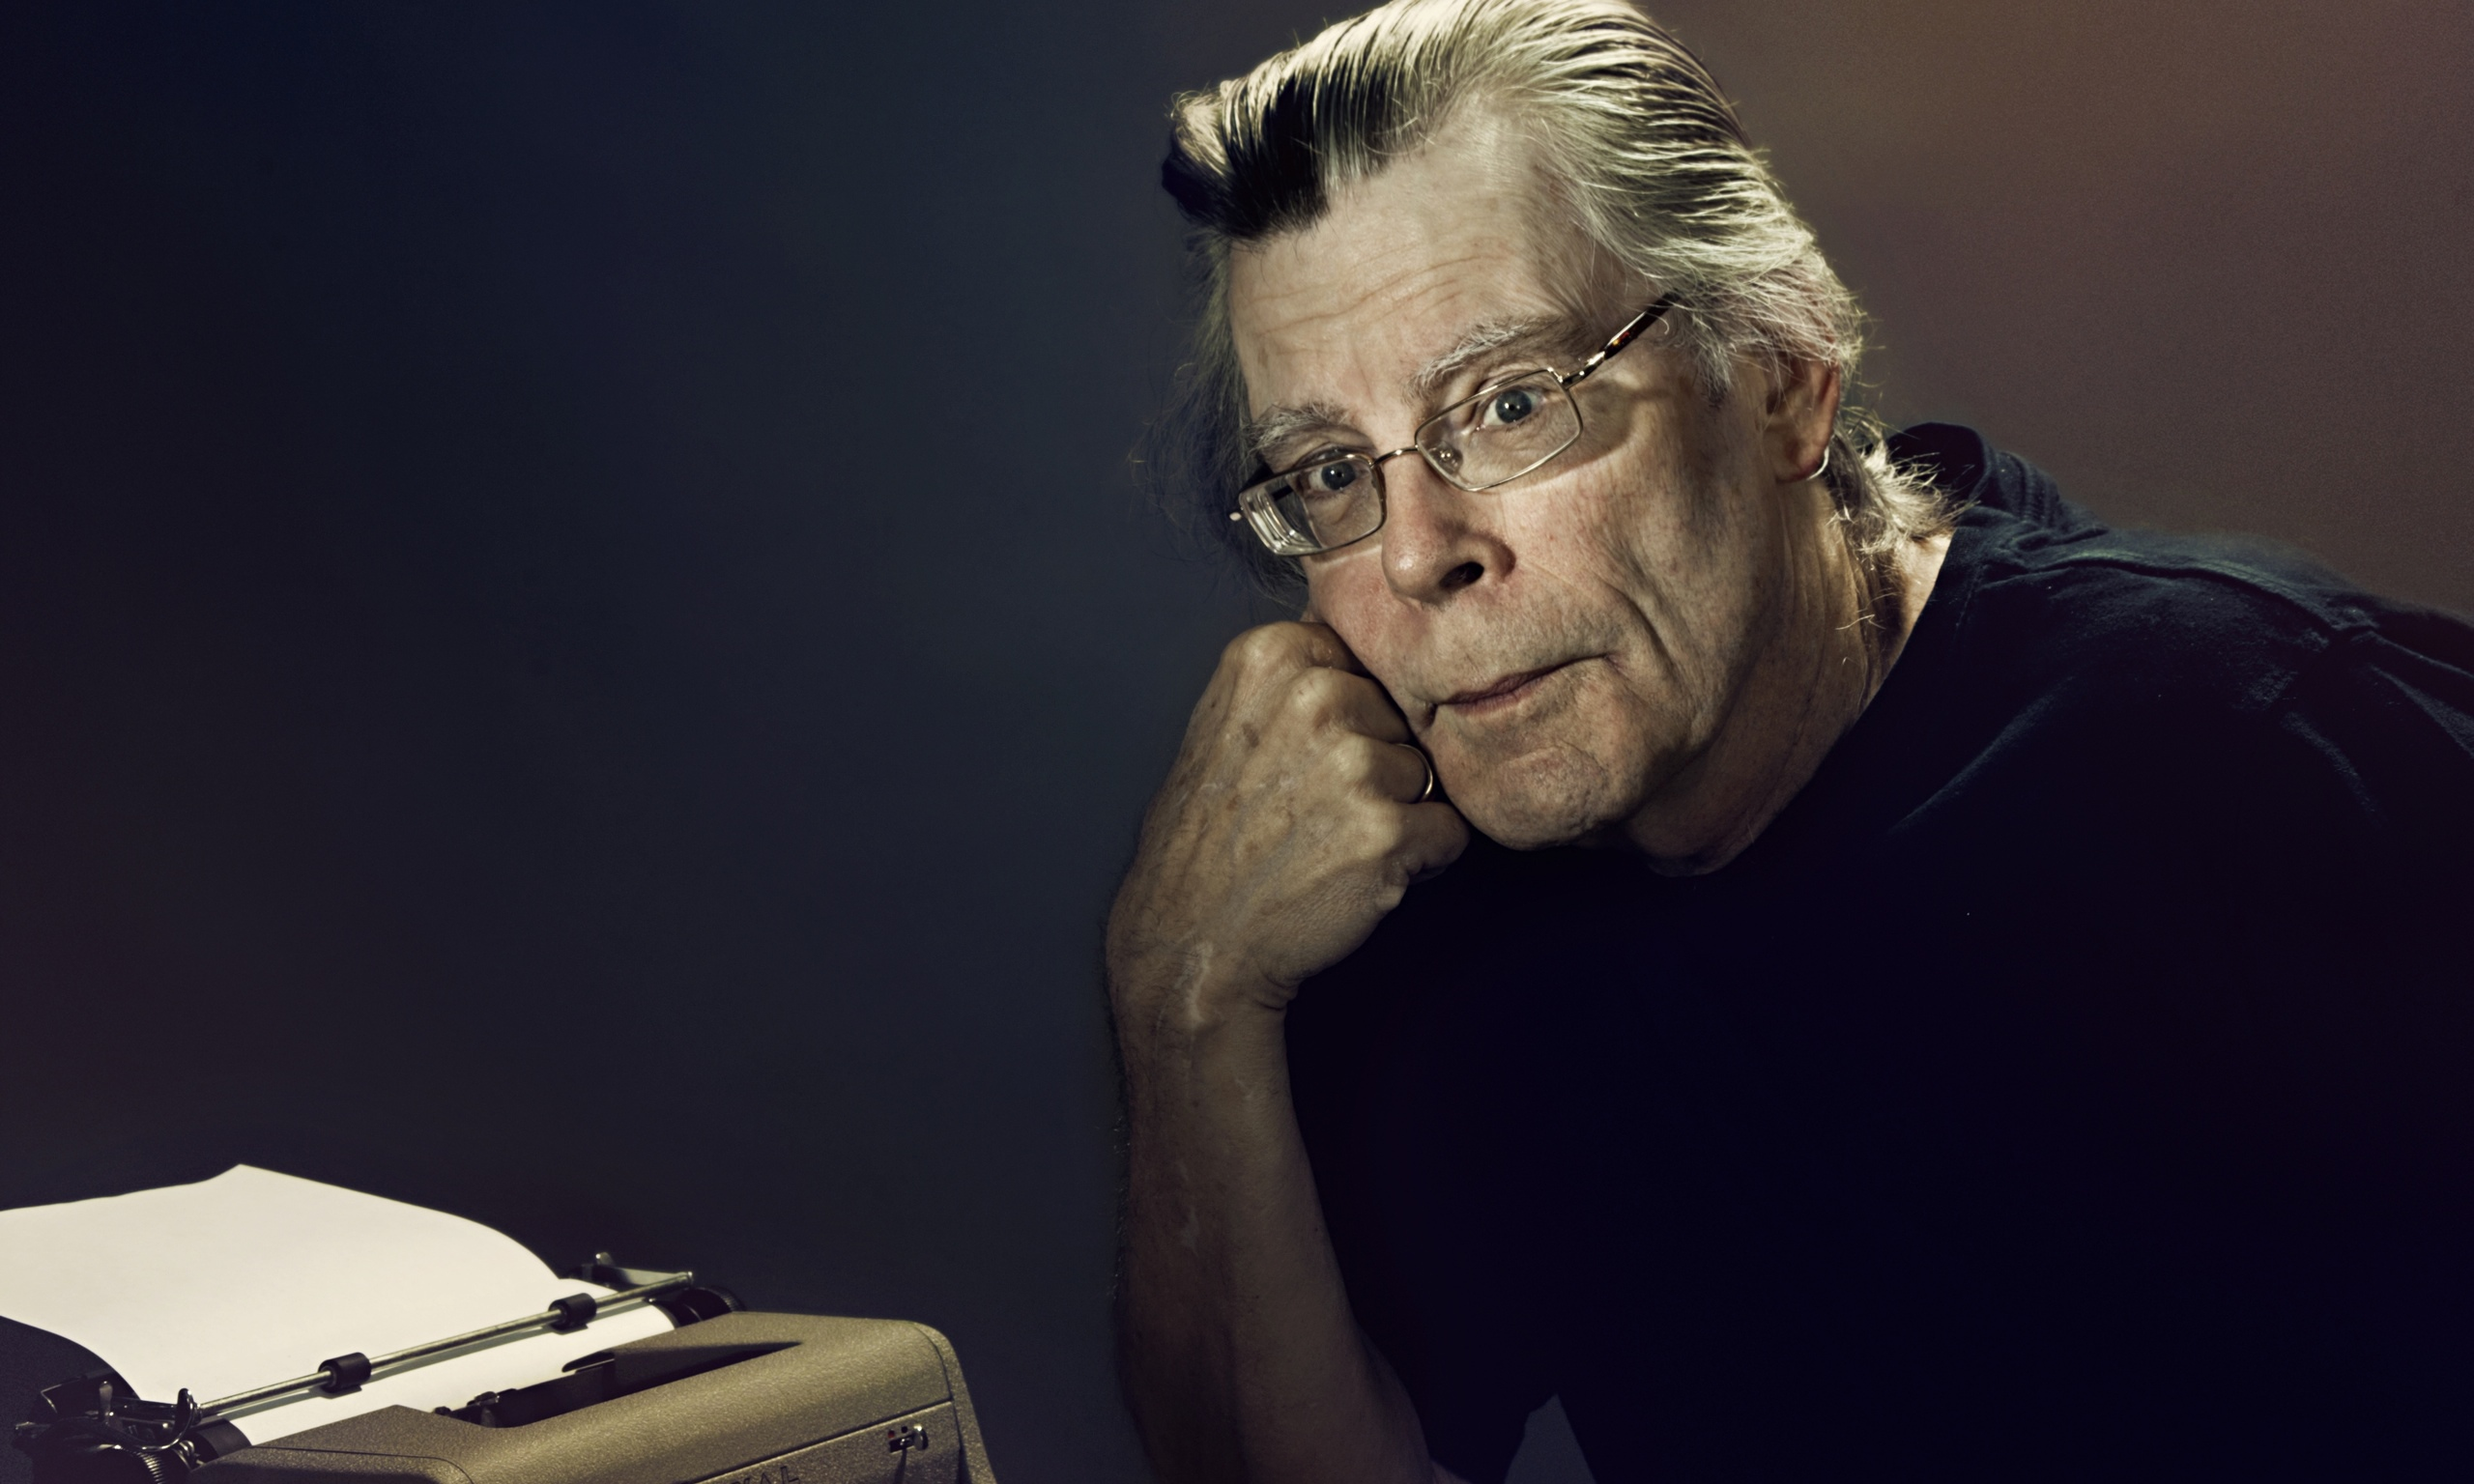 Stephen-King.-Photograph-Steve-Schofield.jpg